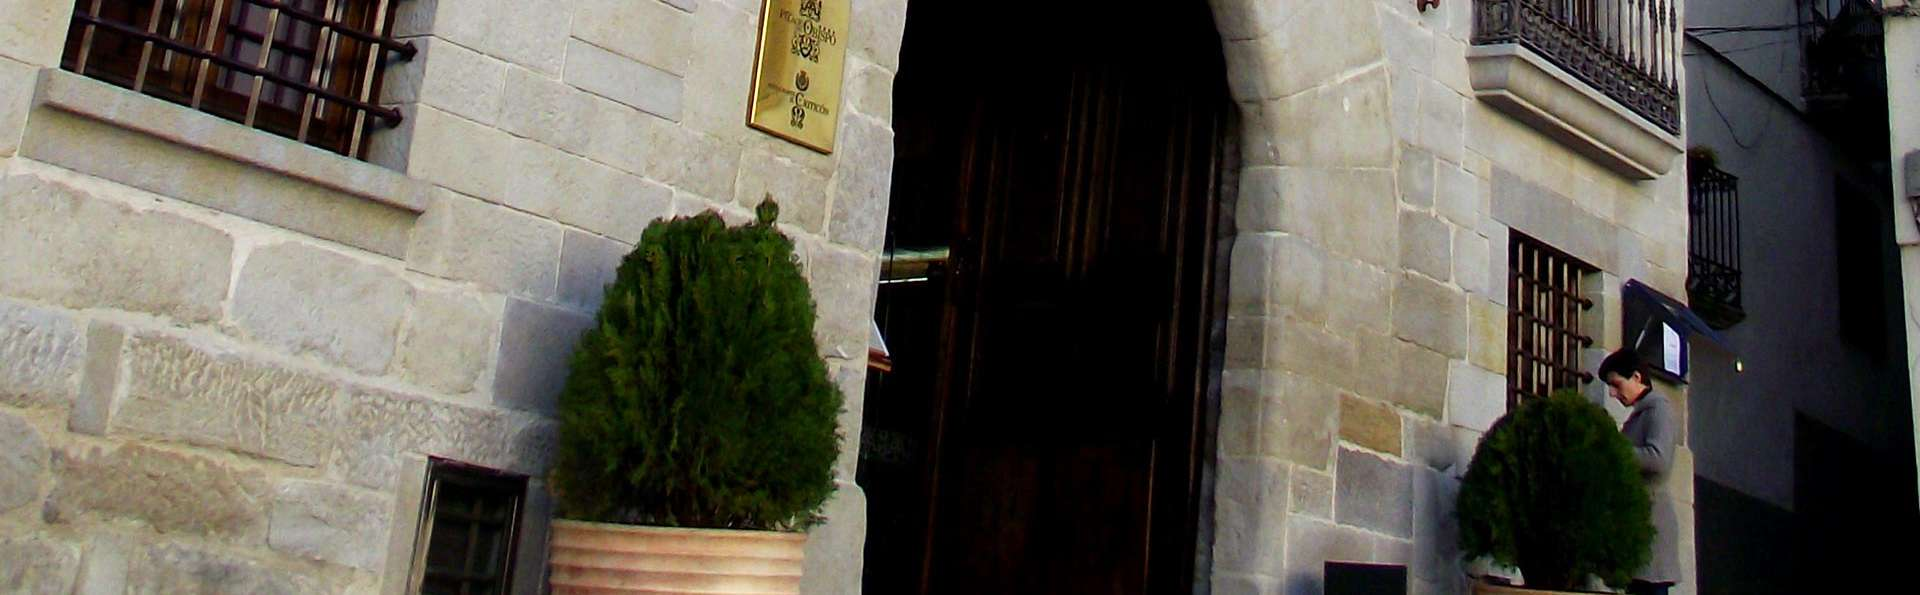 Hotel Palacio del Obispo - edit_entrance.jpg